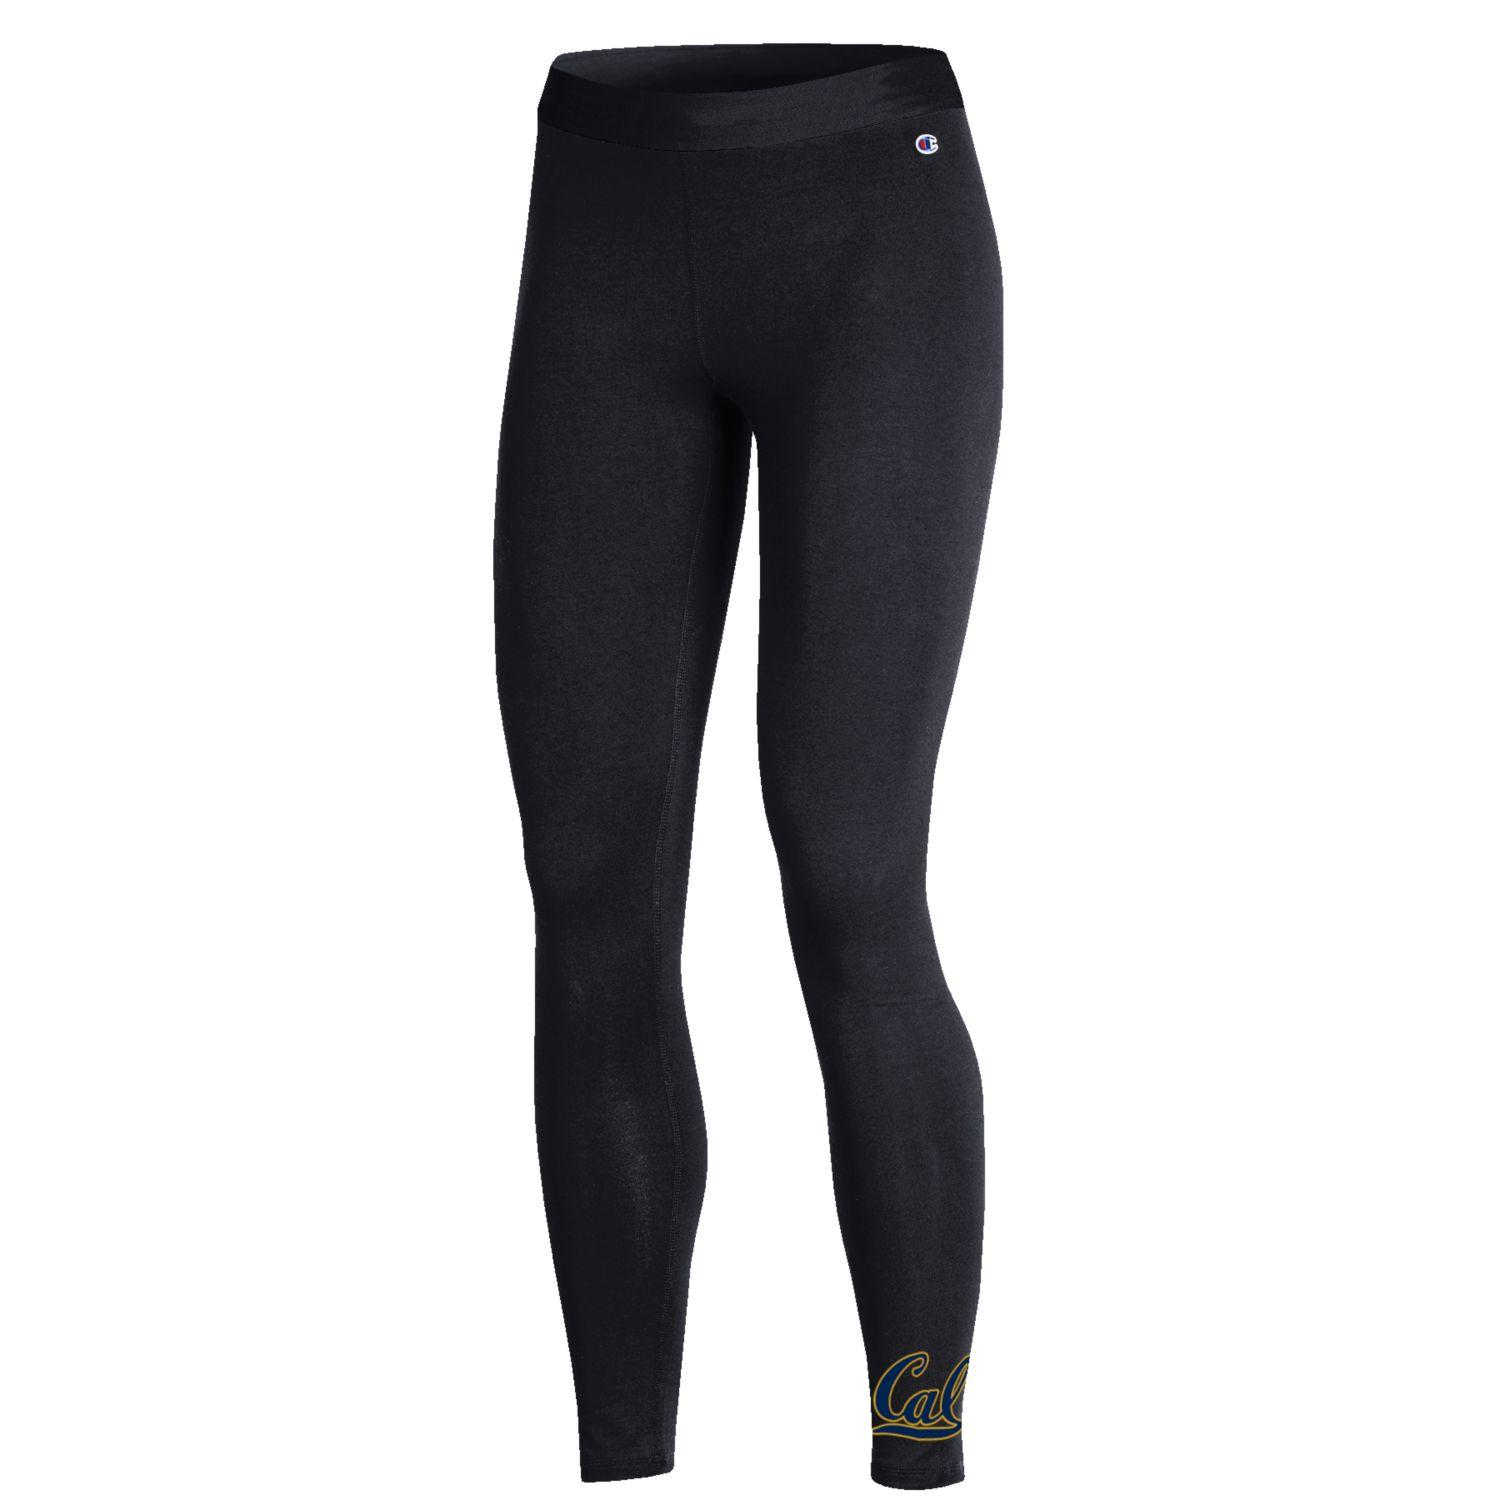 Cal Bears Women's Champion Cotton Stretch Leggings